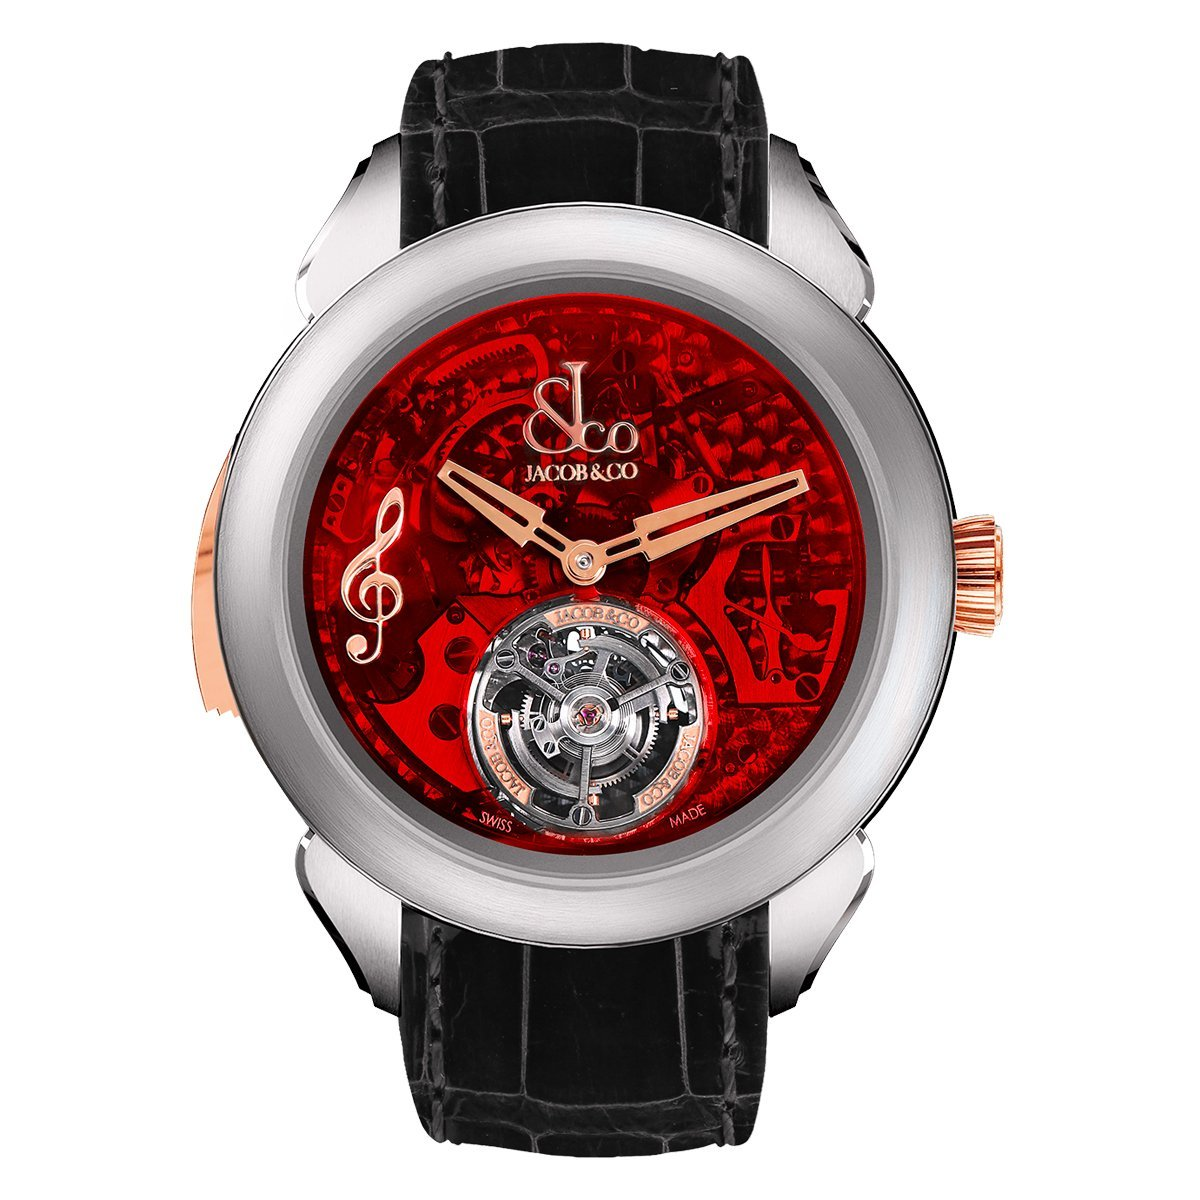 Jacob & Co. Palatial Flying Tourbillon Minute Repeater Titanium Red Mineral - Watches & Crystals